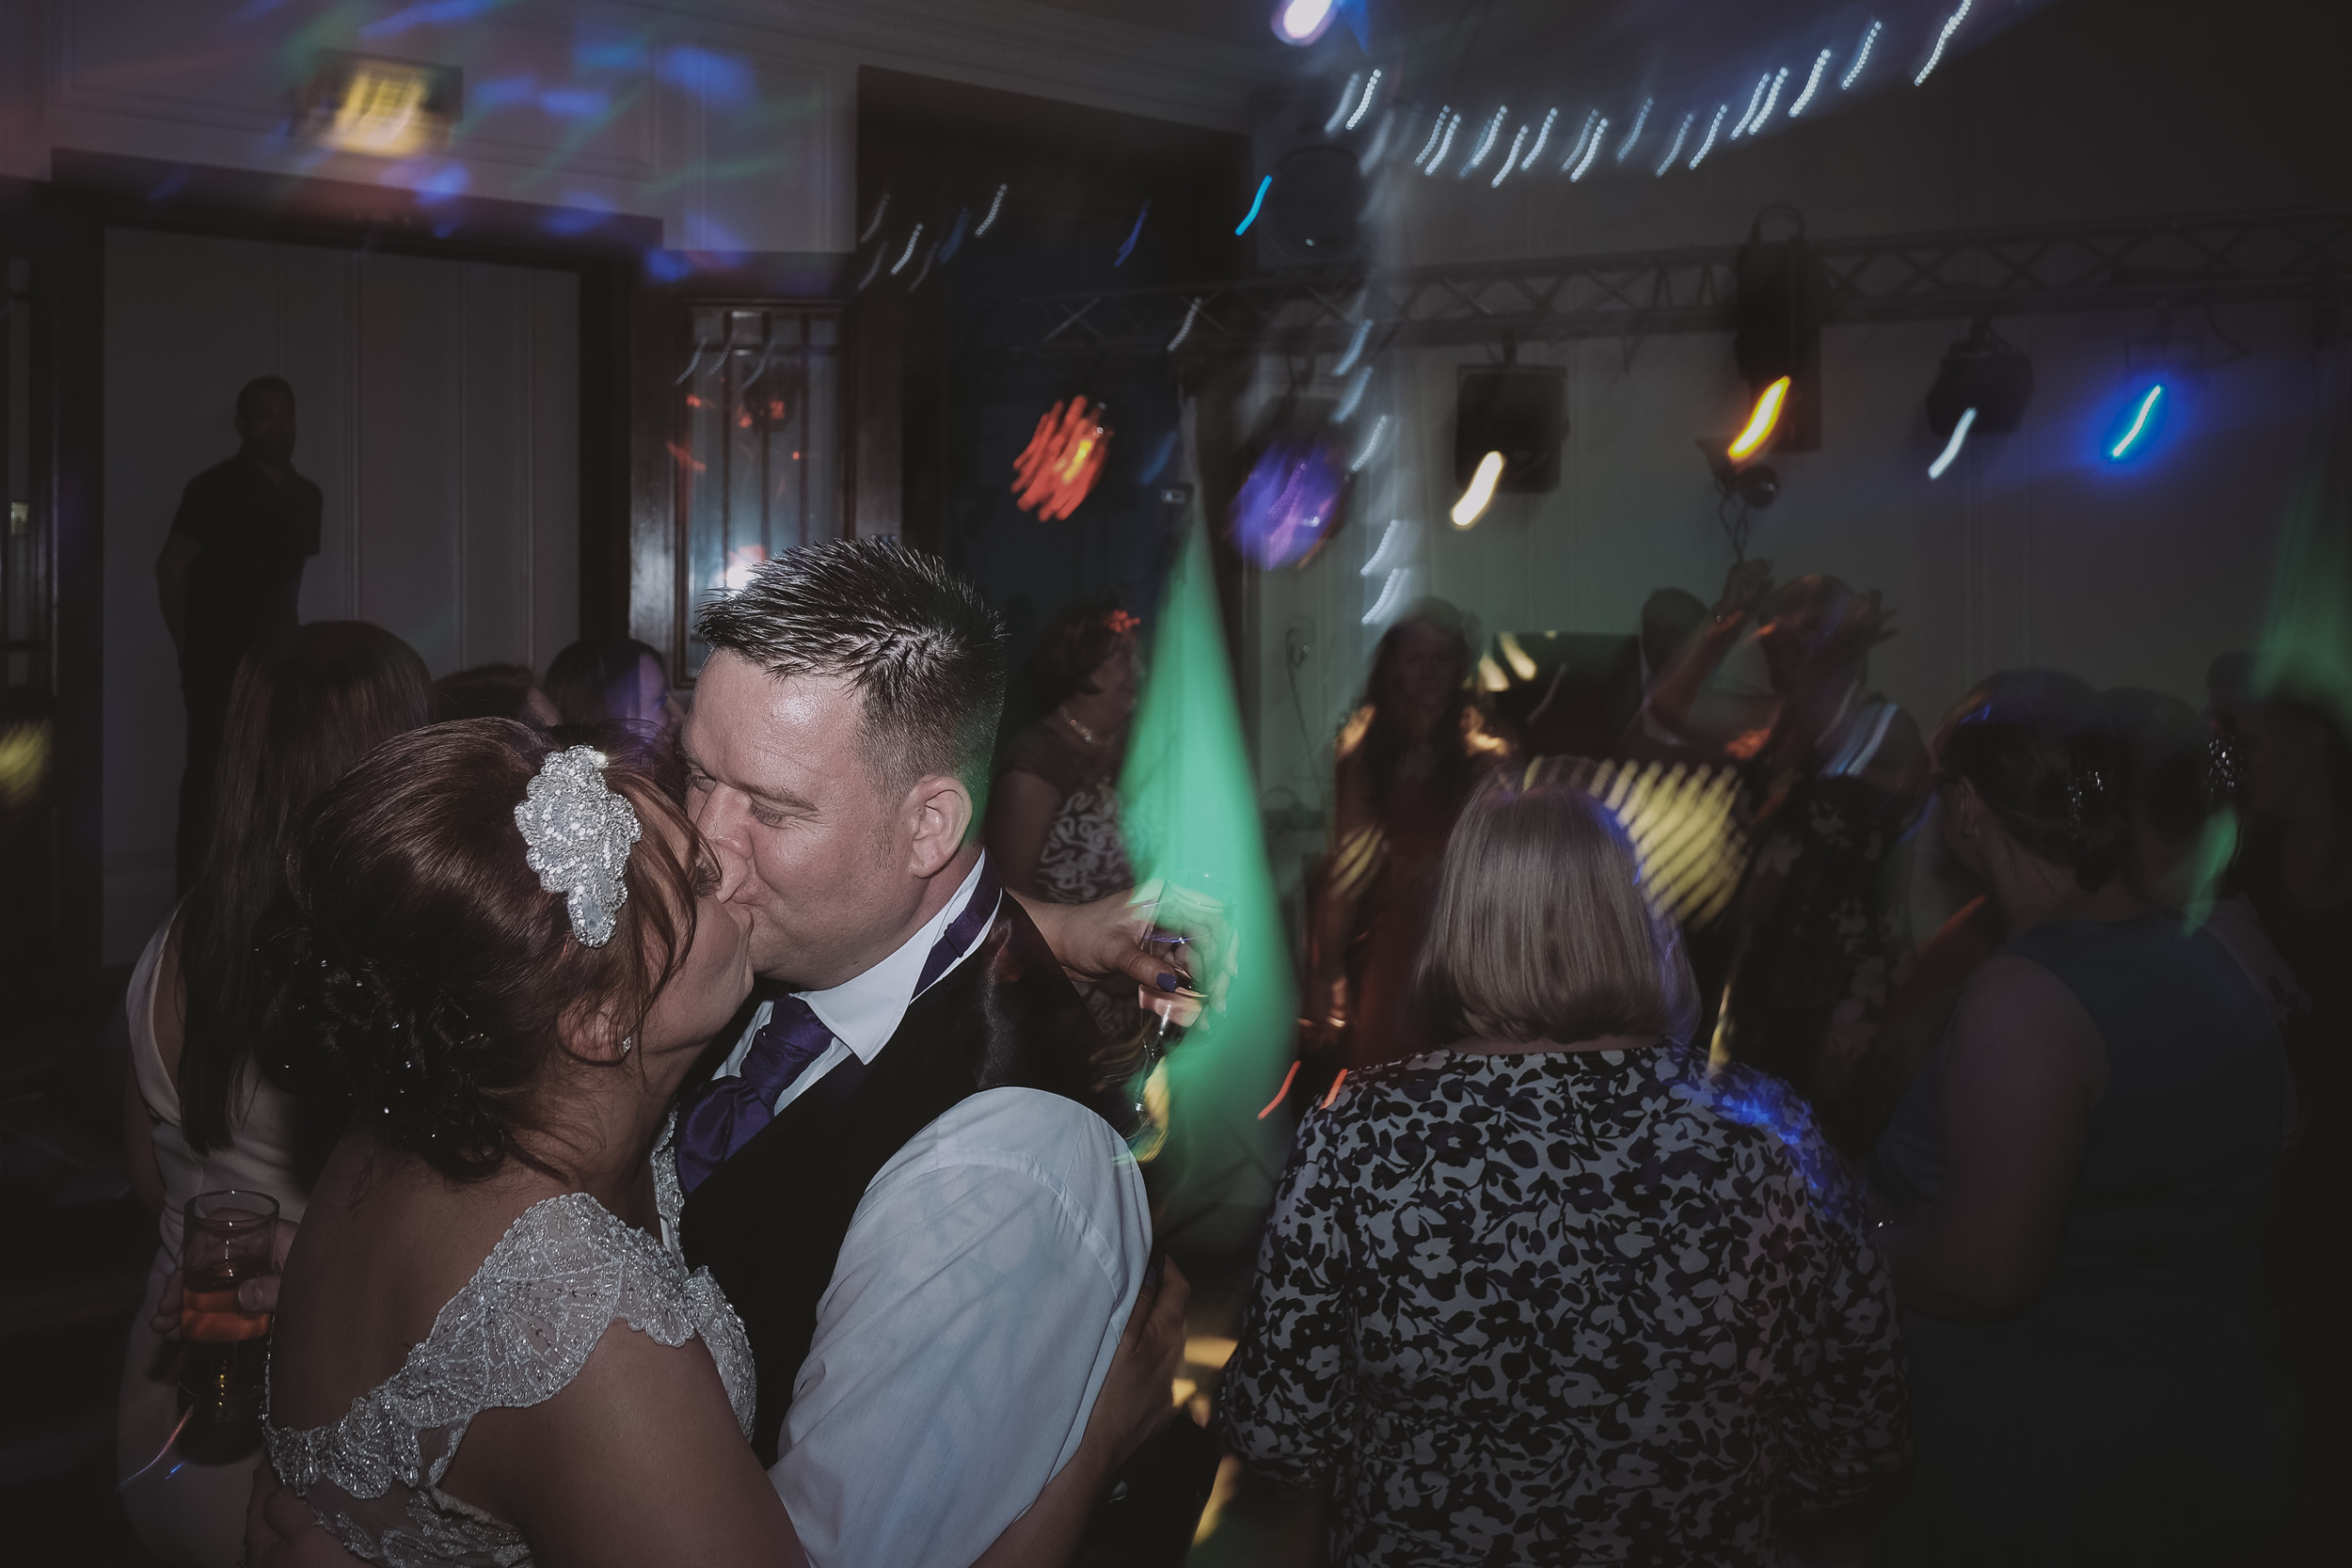 Newcastle Wedding Photographer // Bride and groom kiss on dancefloor at end of wedding